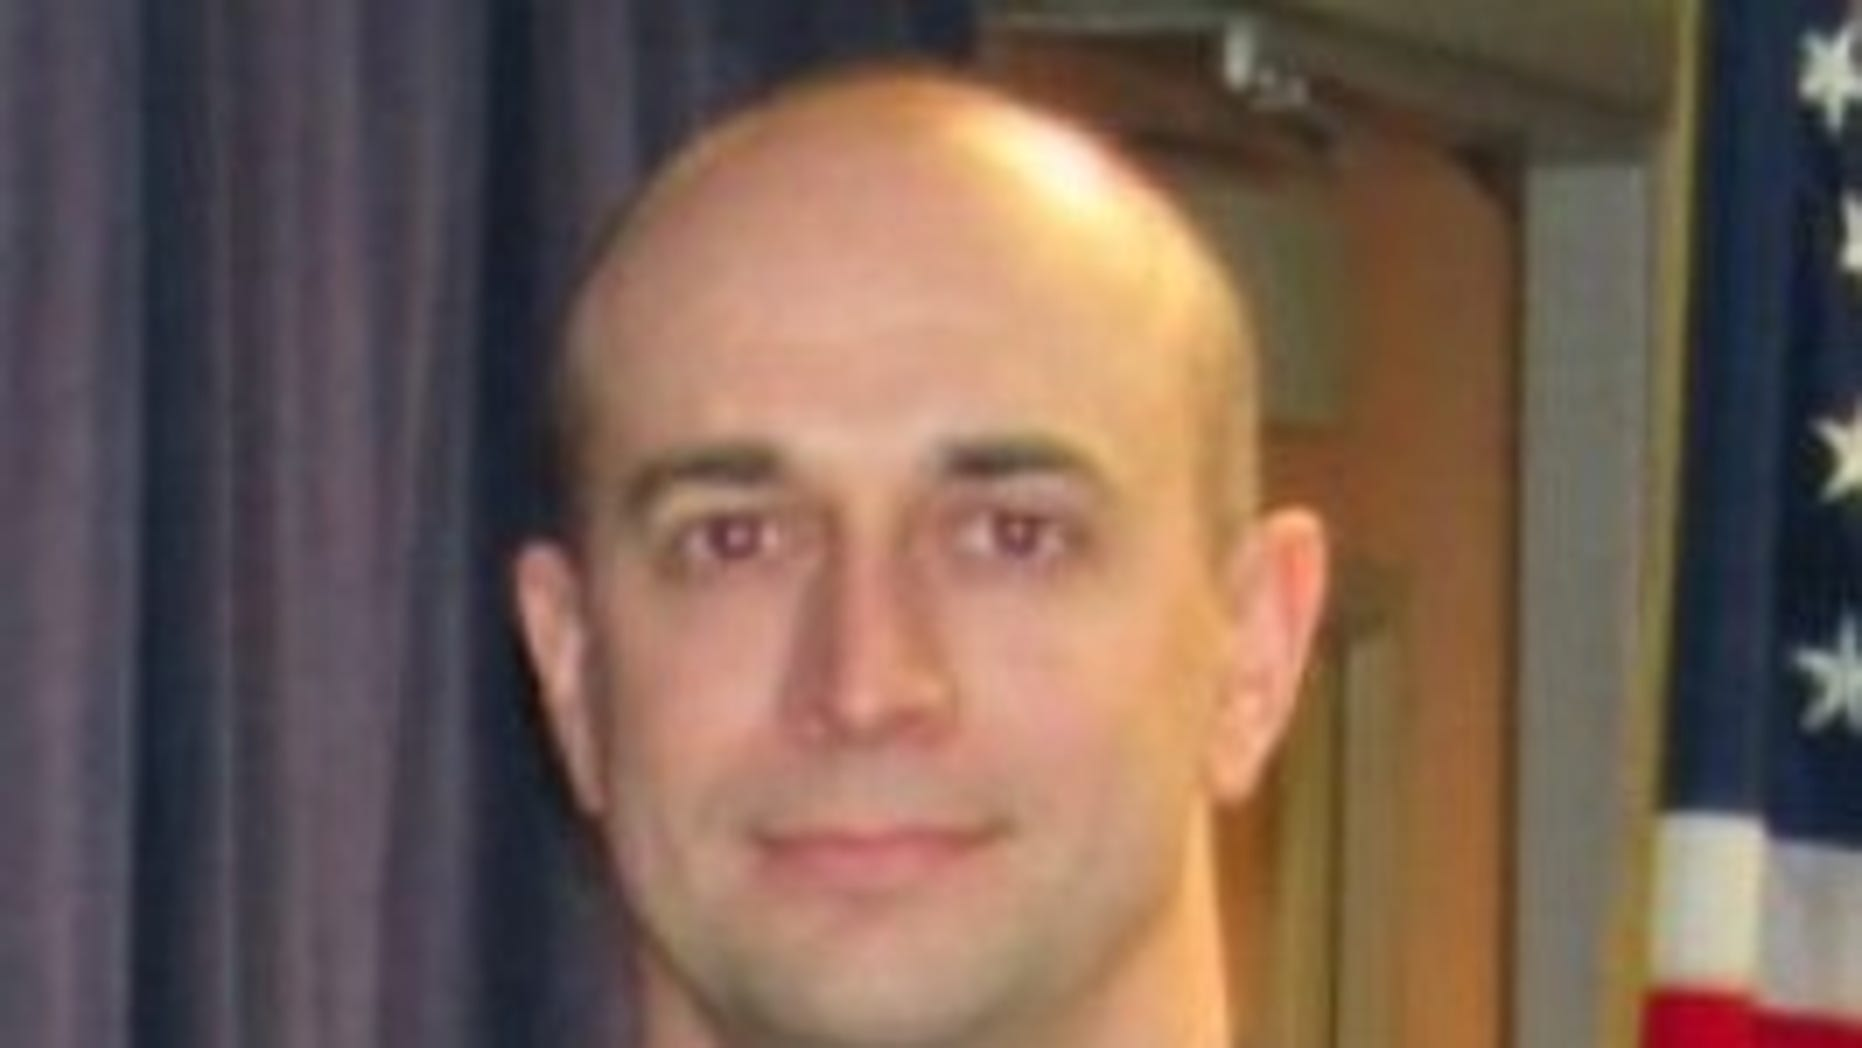 South Salt Lake Police Officer David Romrell, 31, was fatally and intentionally struck by a vehicle while responding to a burglary call in Utah on Saturday night, officials said.